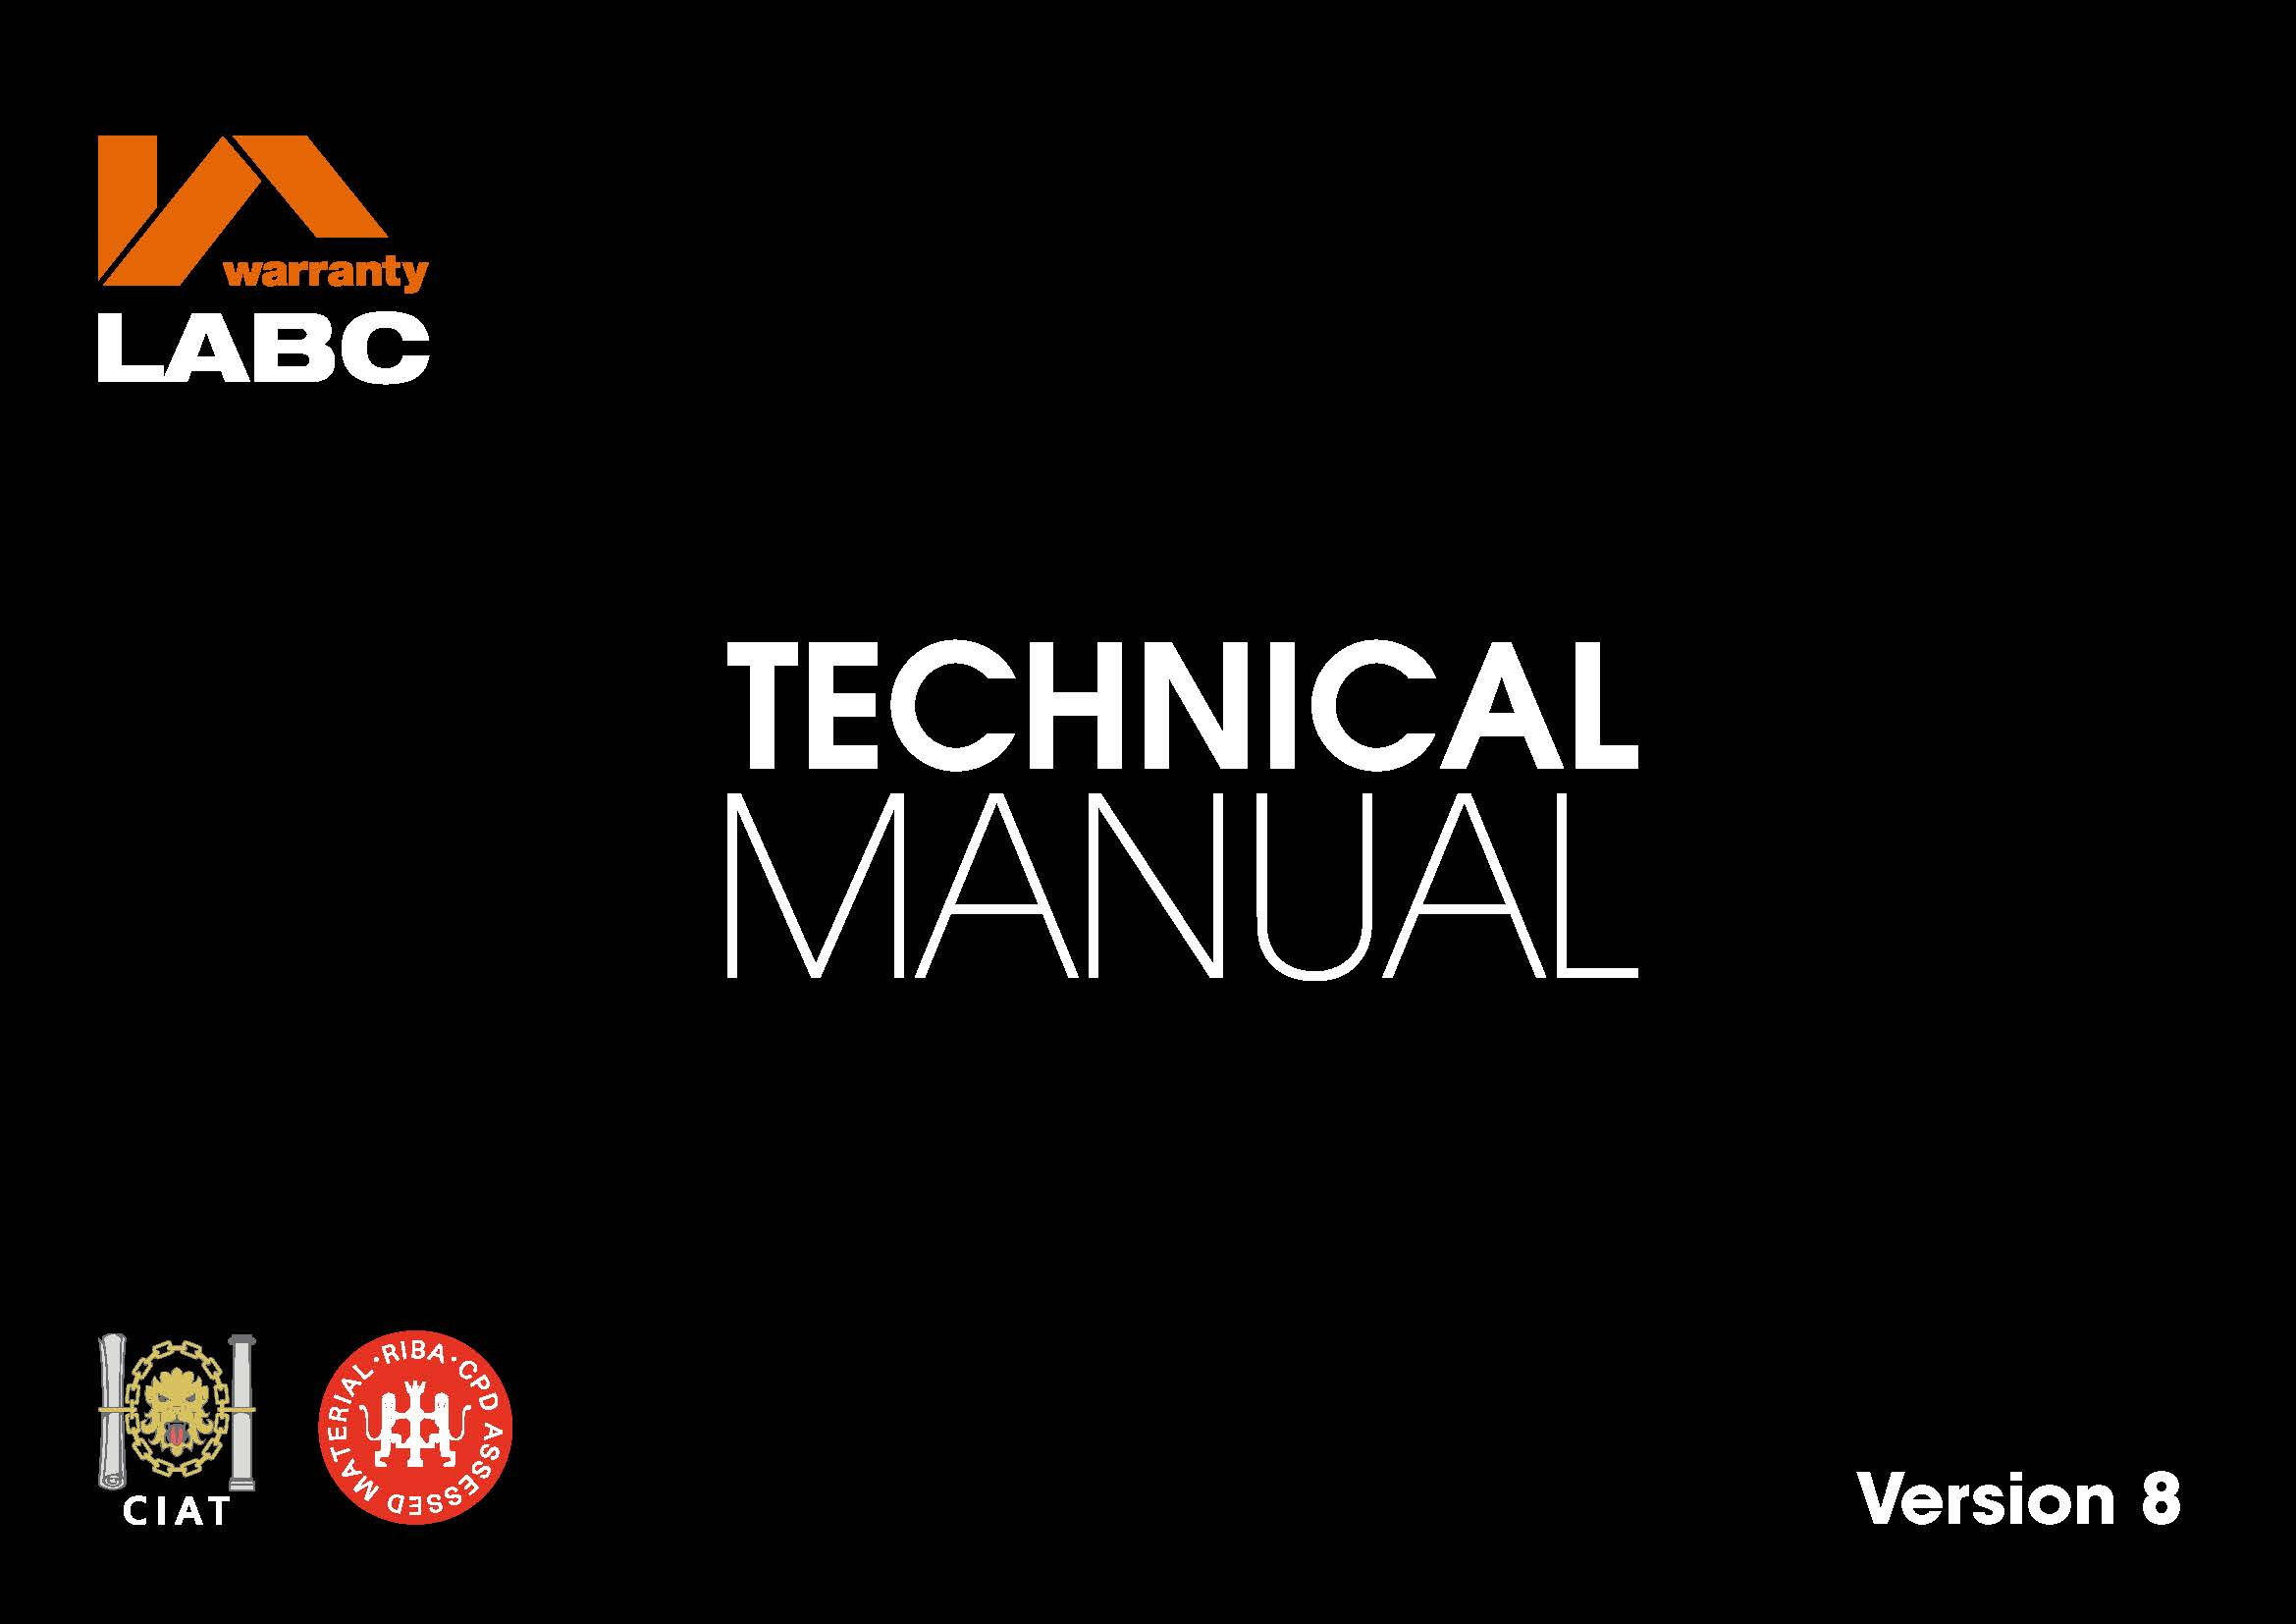 Tech manual front cover_Page_1.jpg